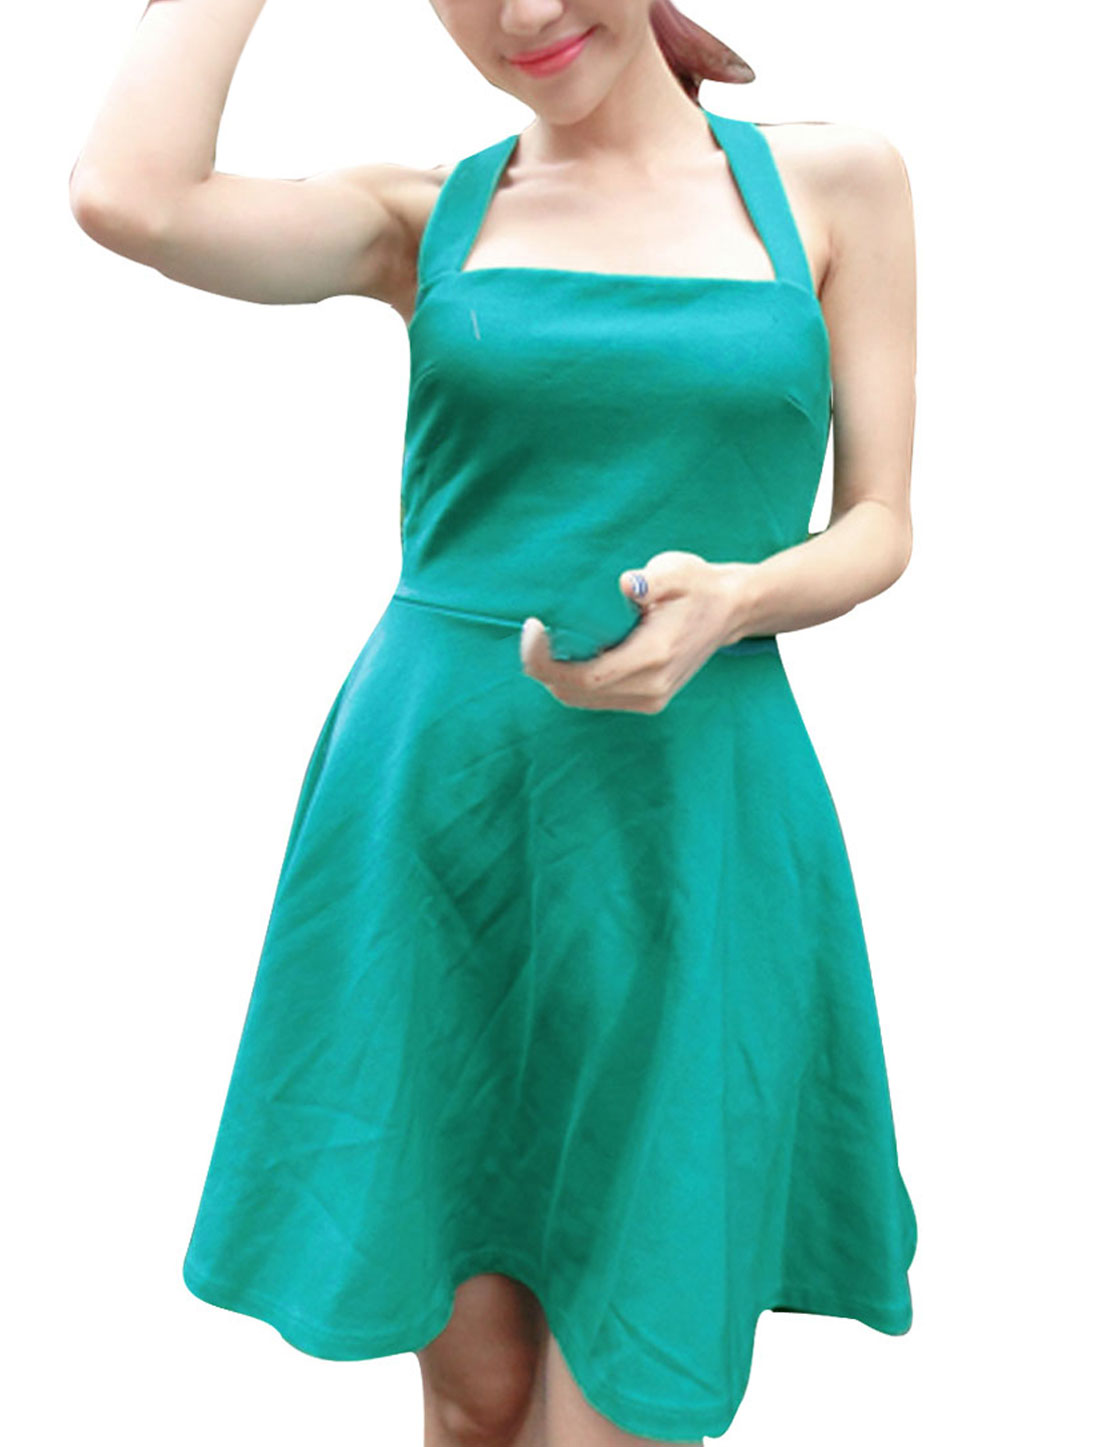 Woman Chic Sea Green Square Neck Shoulder Straps Design Mini Dress XS